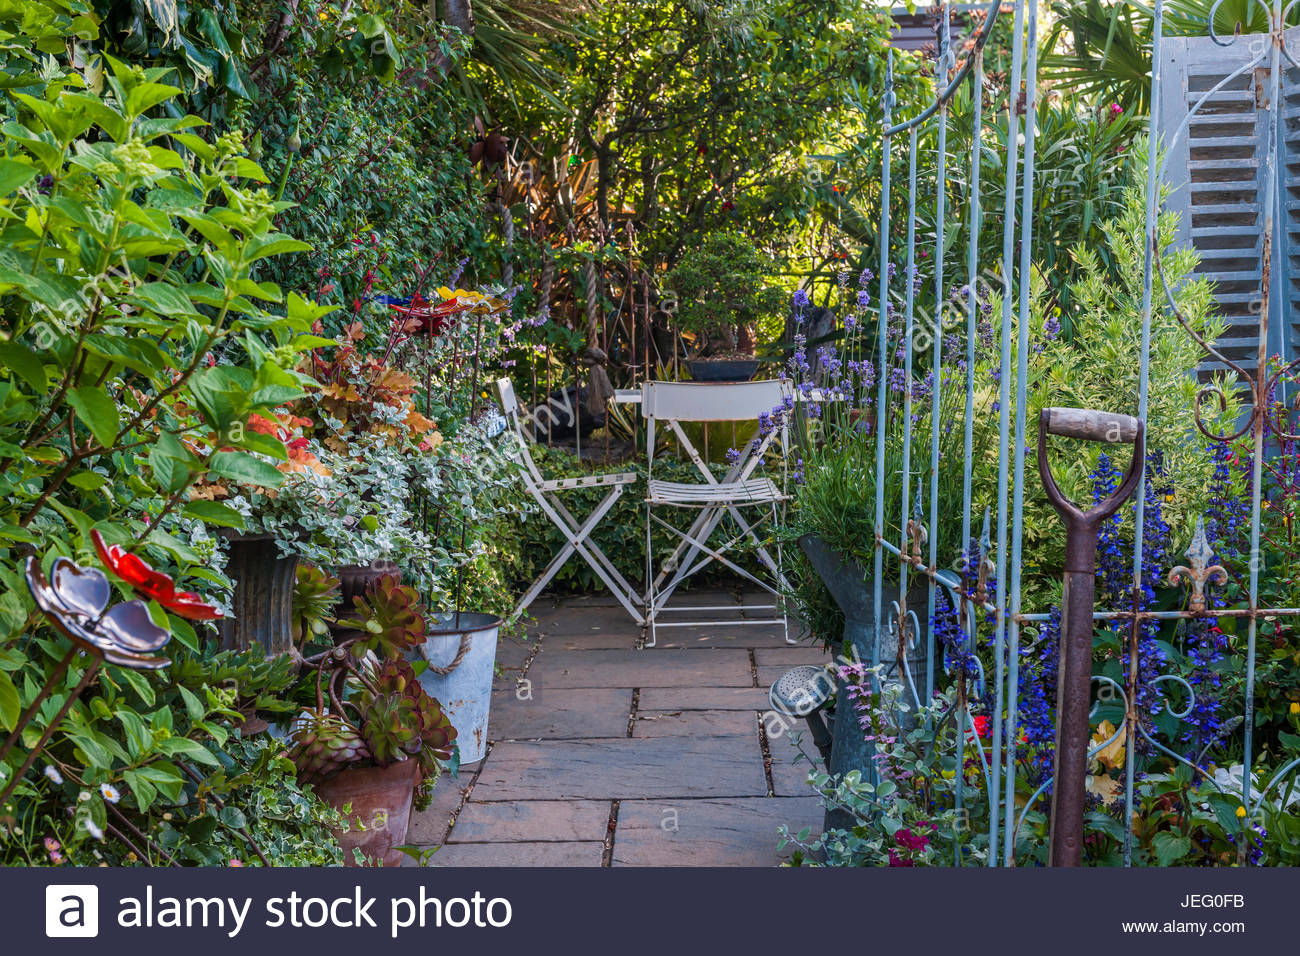 patio area at Driftwood garden - Stock Image